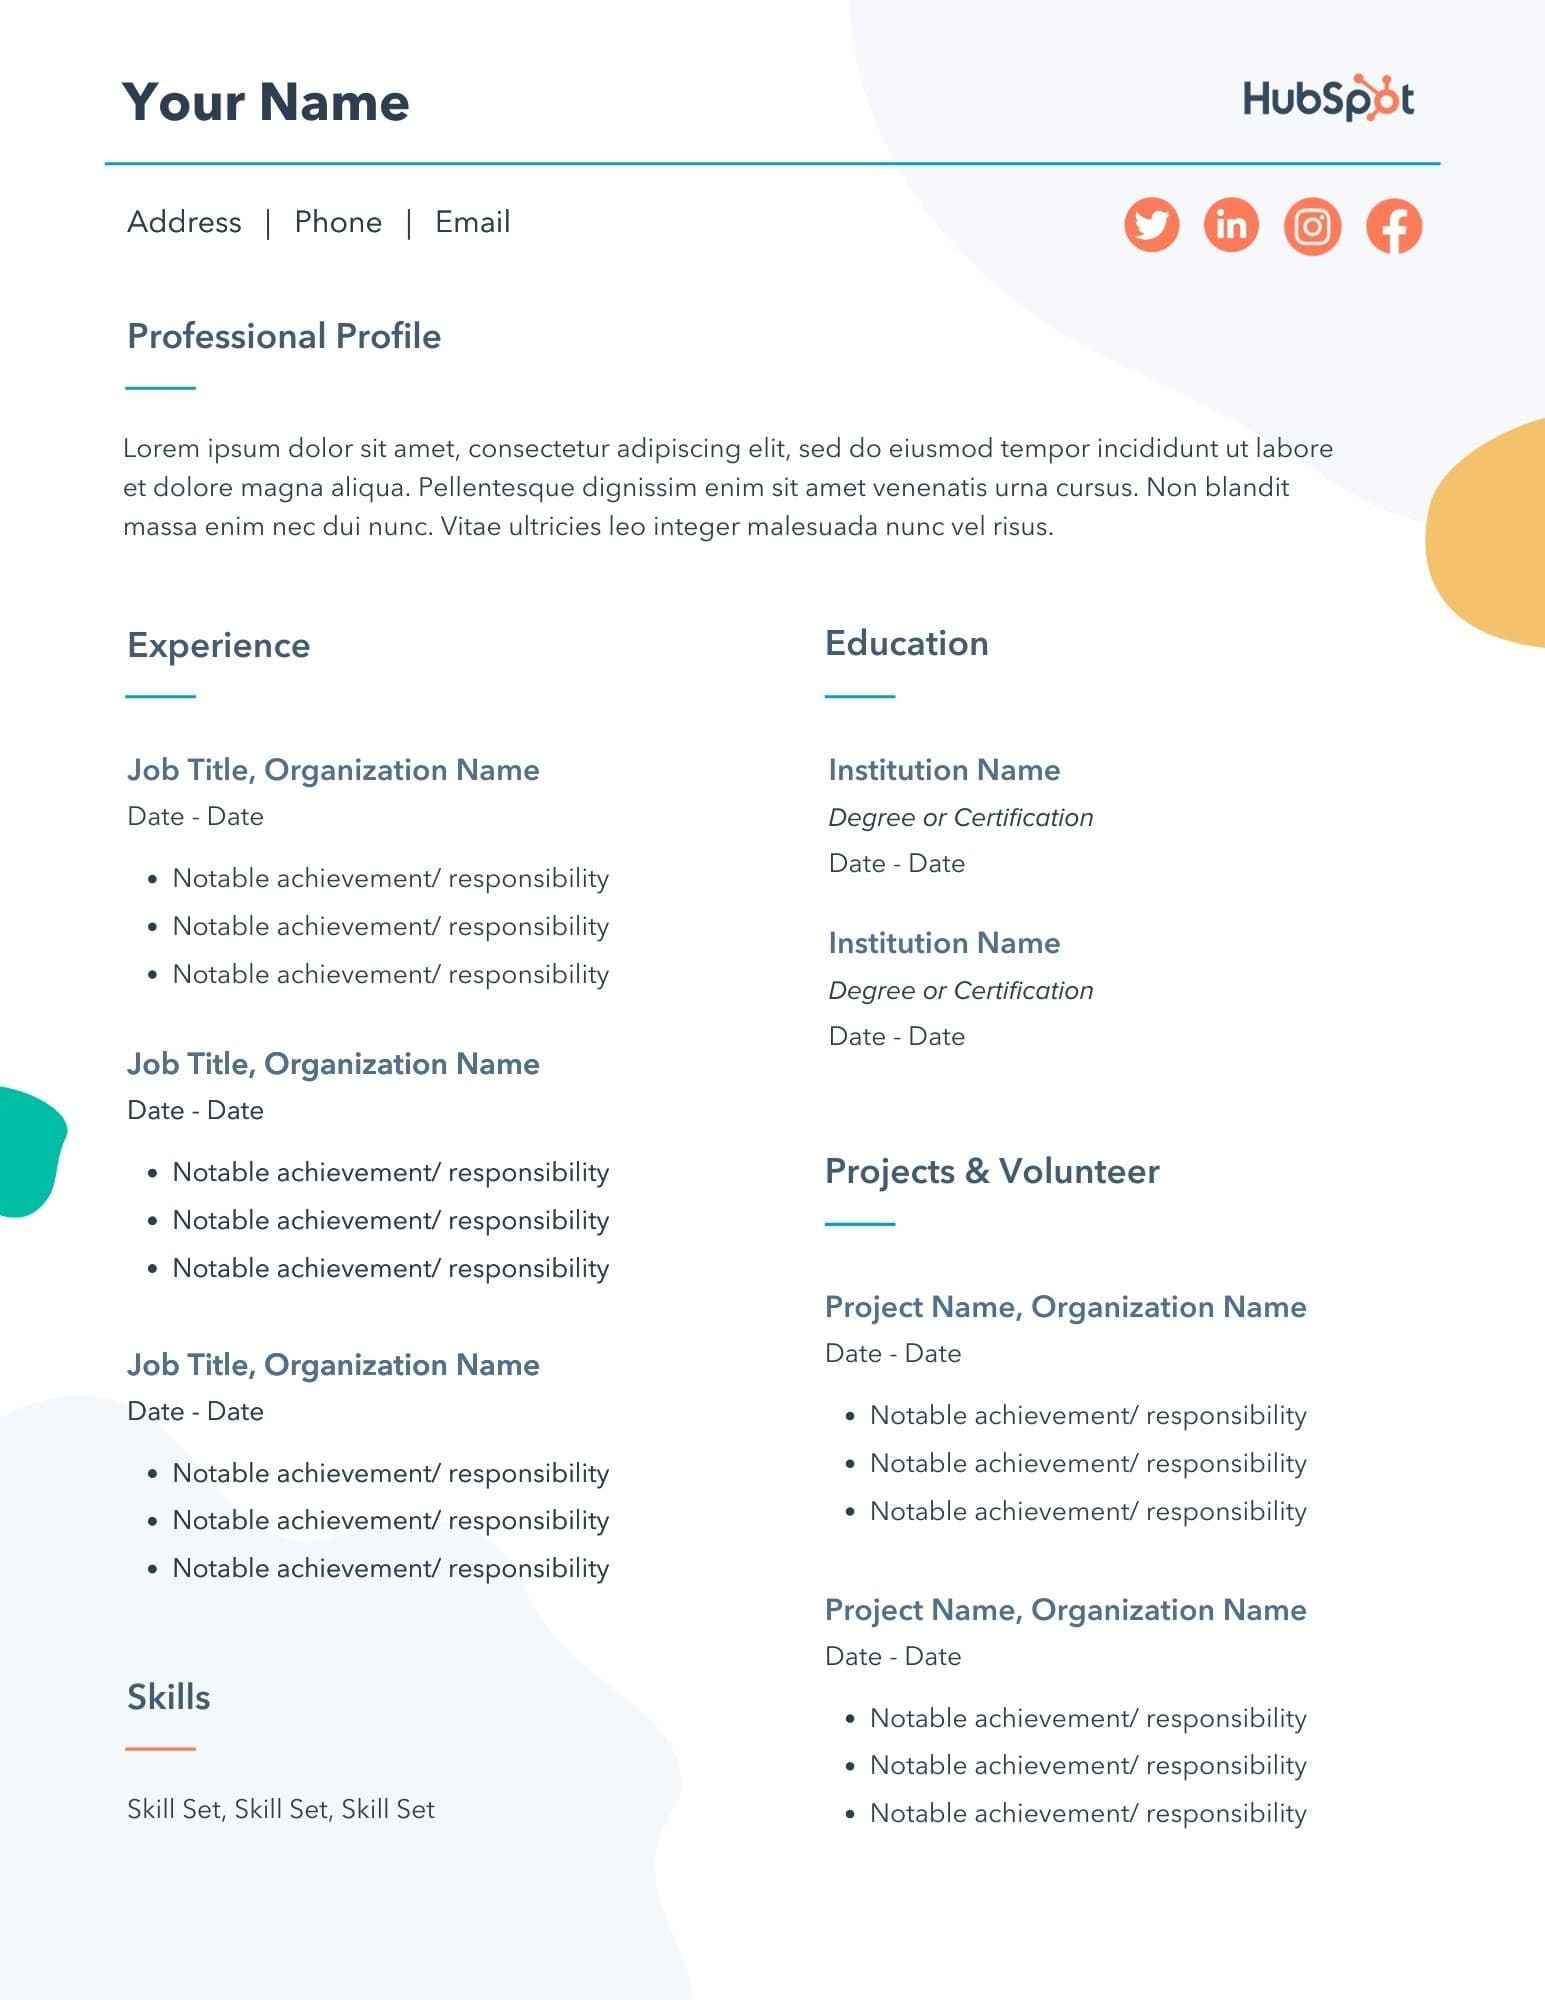 free resume templates for microsoft word to make your own template operations manager Resume Free Microsoft Word Resume Templates 2020